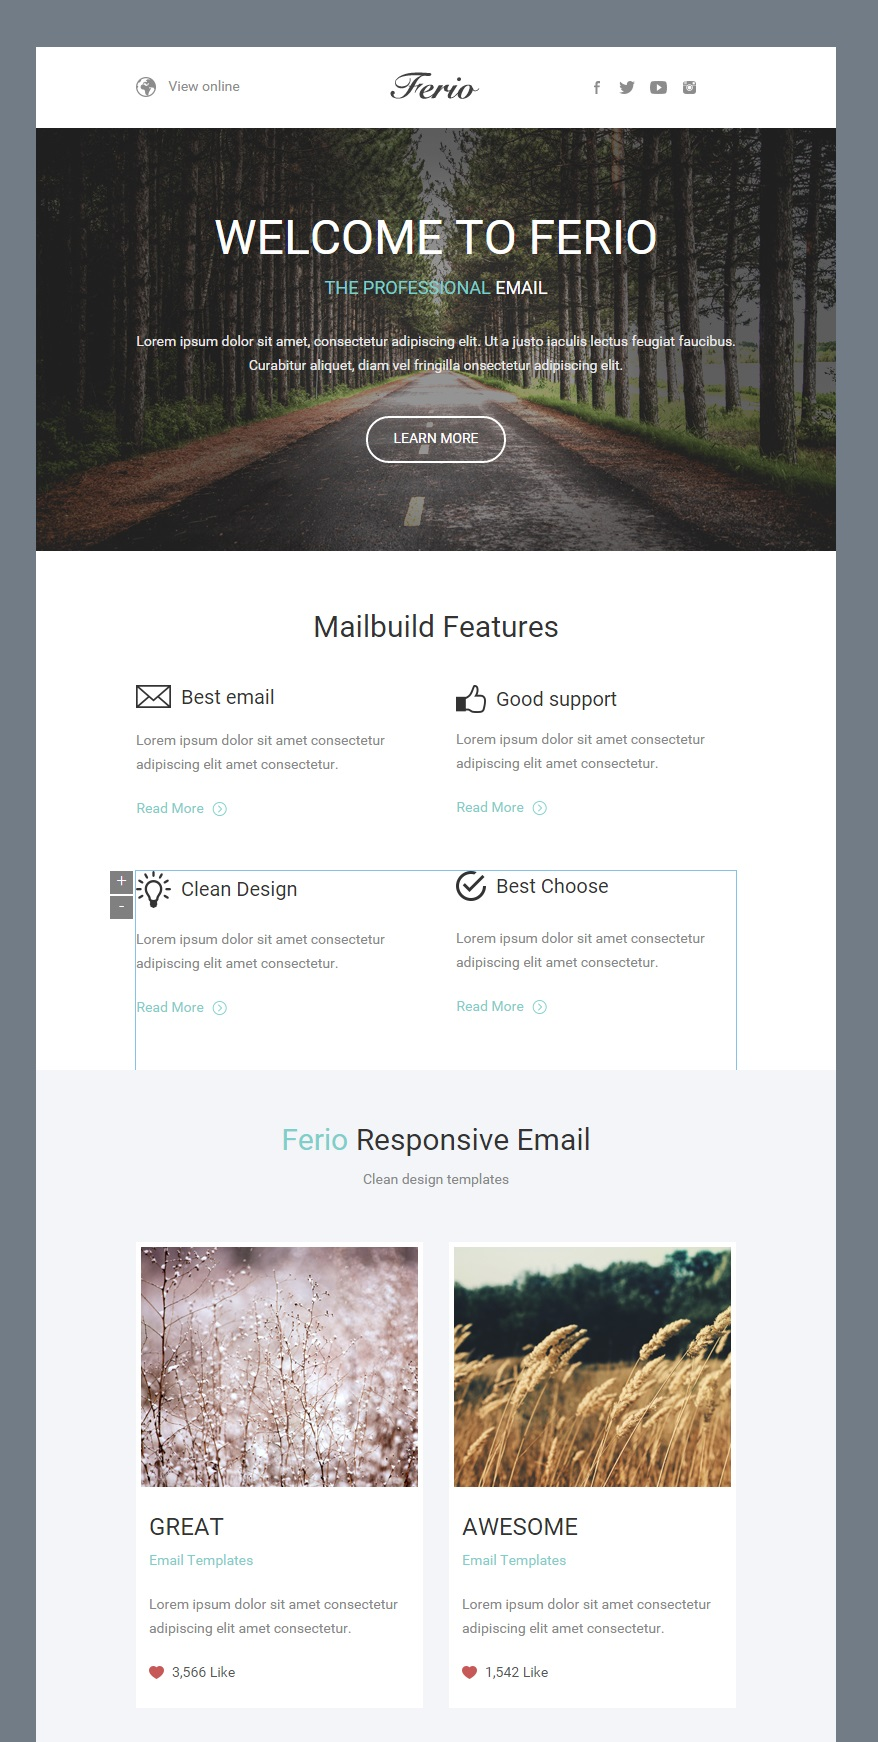 Ferio responsive email template